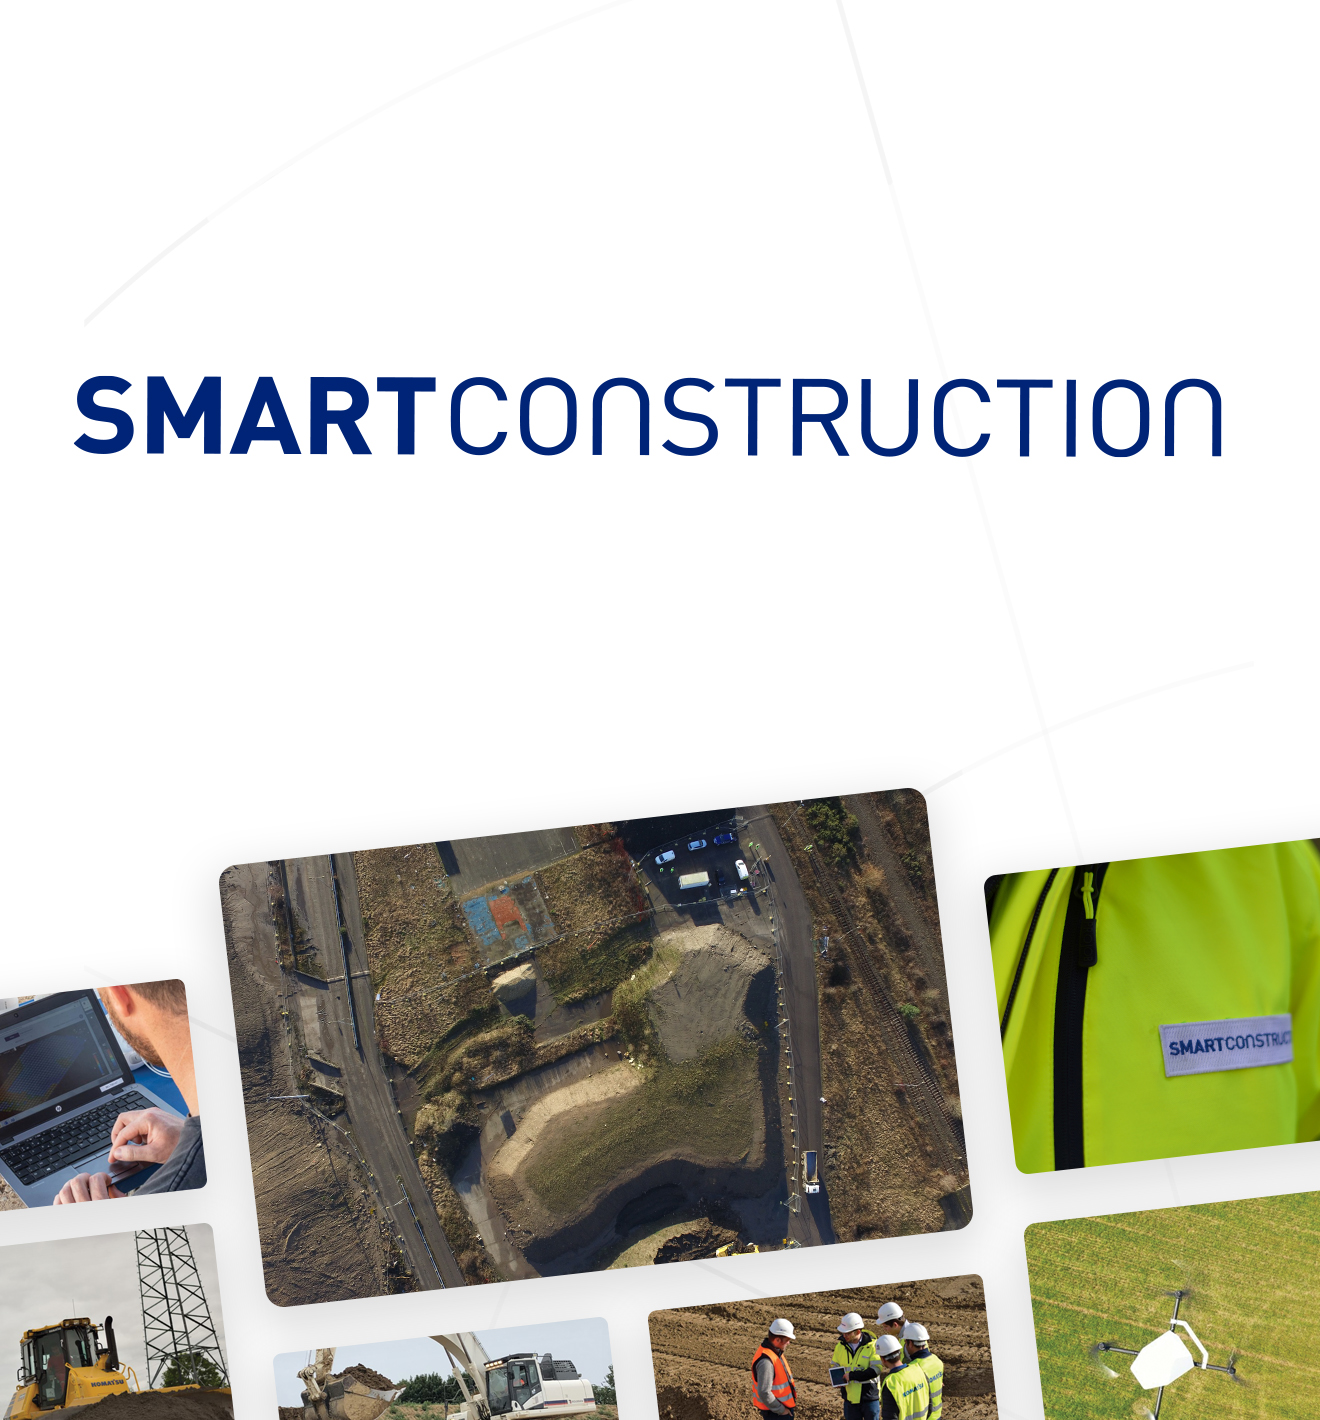 The European Launch of SMART CONSTRUCTION